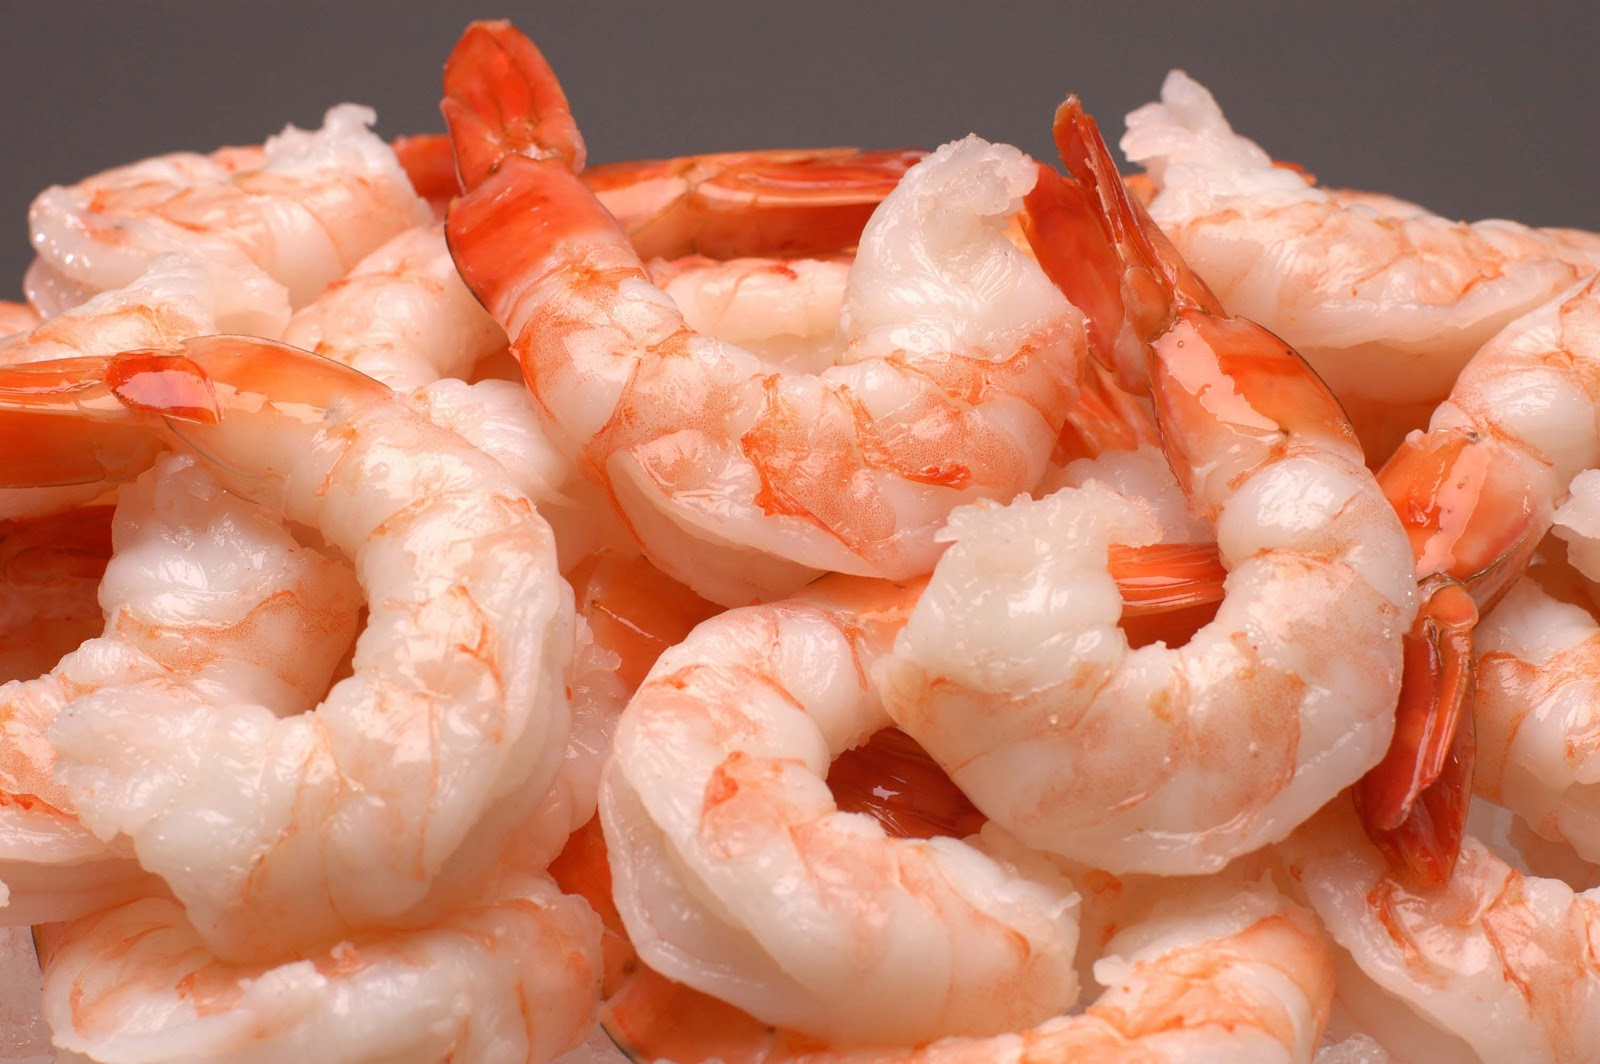 Candy s recipes for a sweet life january 4 2012 shrimp potato and